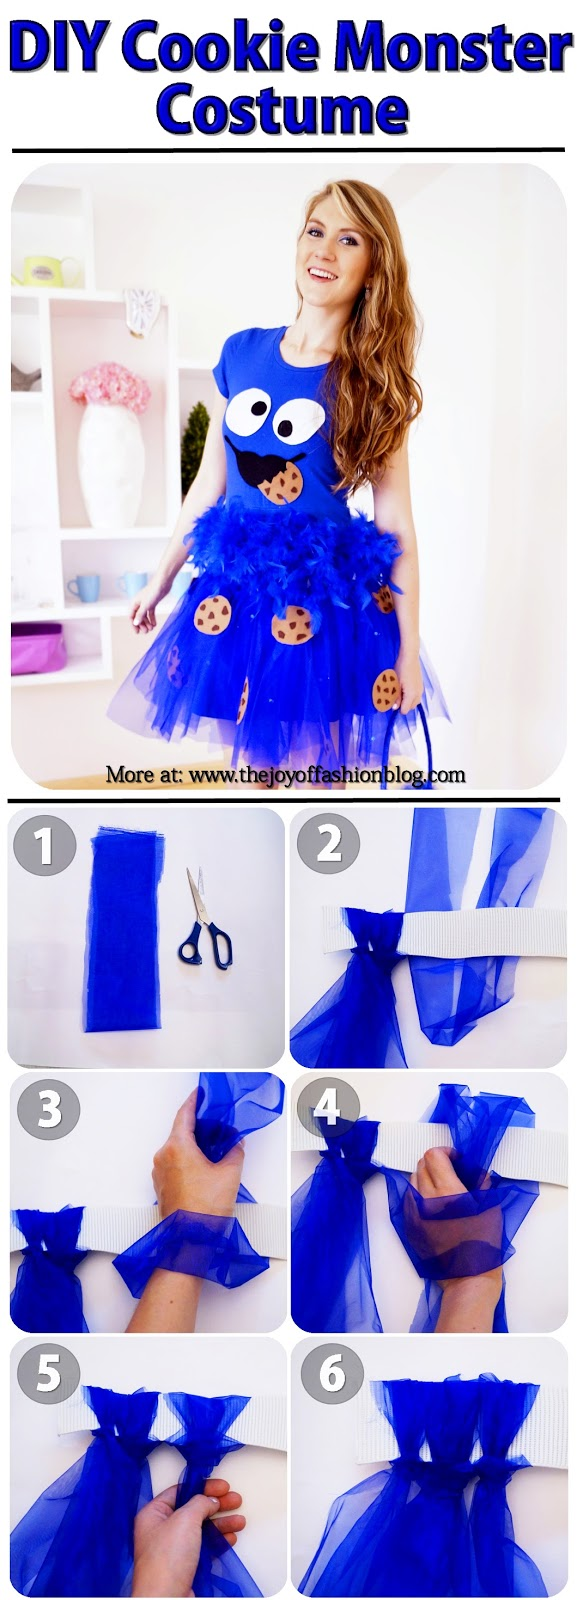 Cookie Monster Costume Tutorial, Part 1